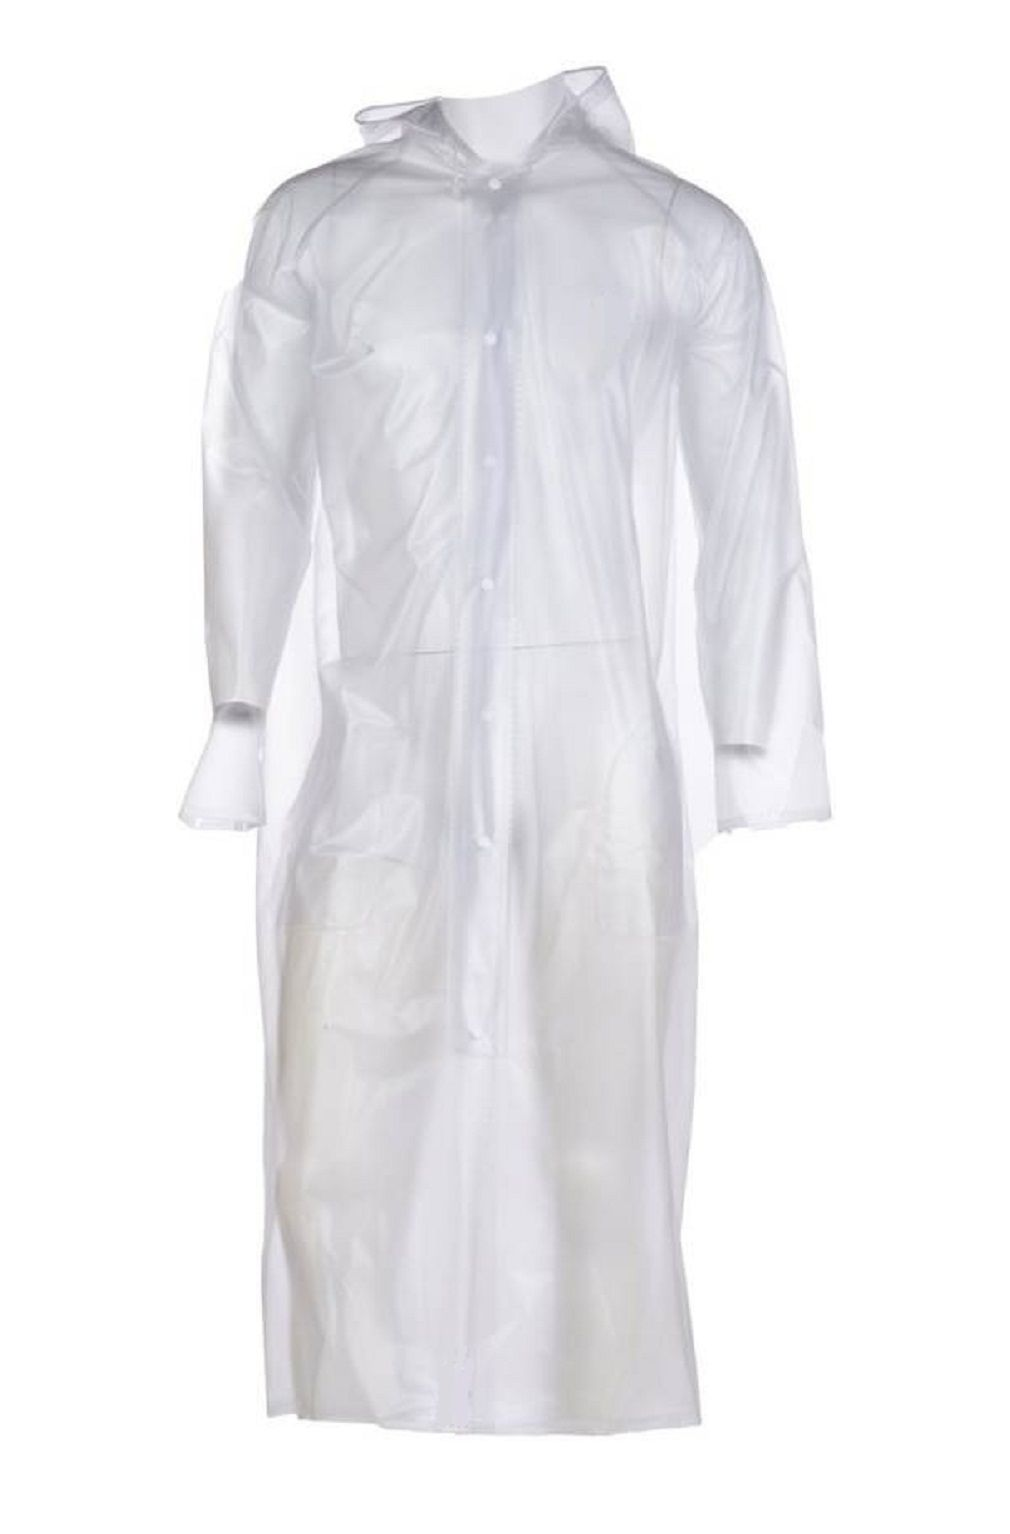 Hani Fashion PVC Long Raincoat - White